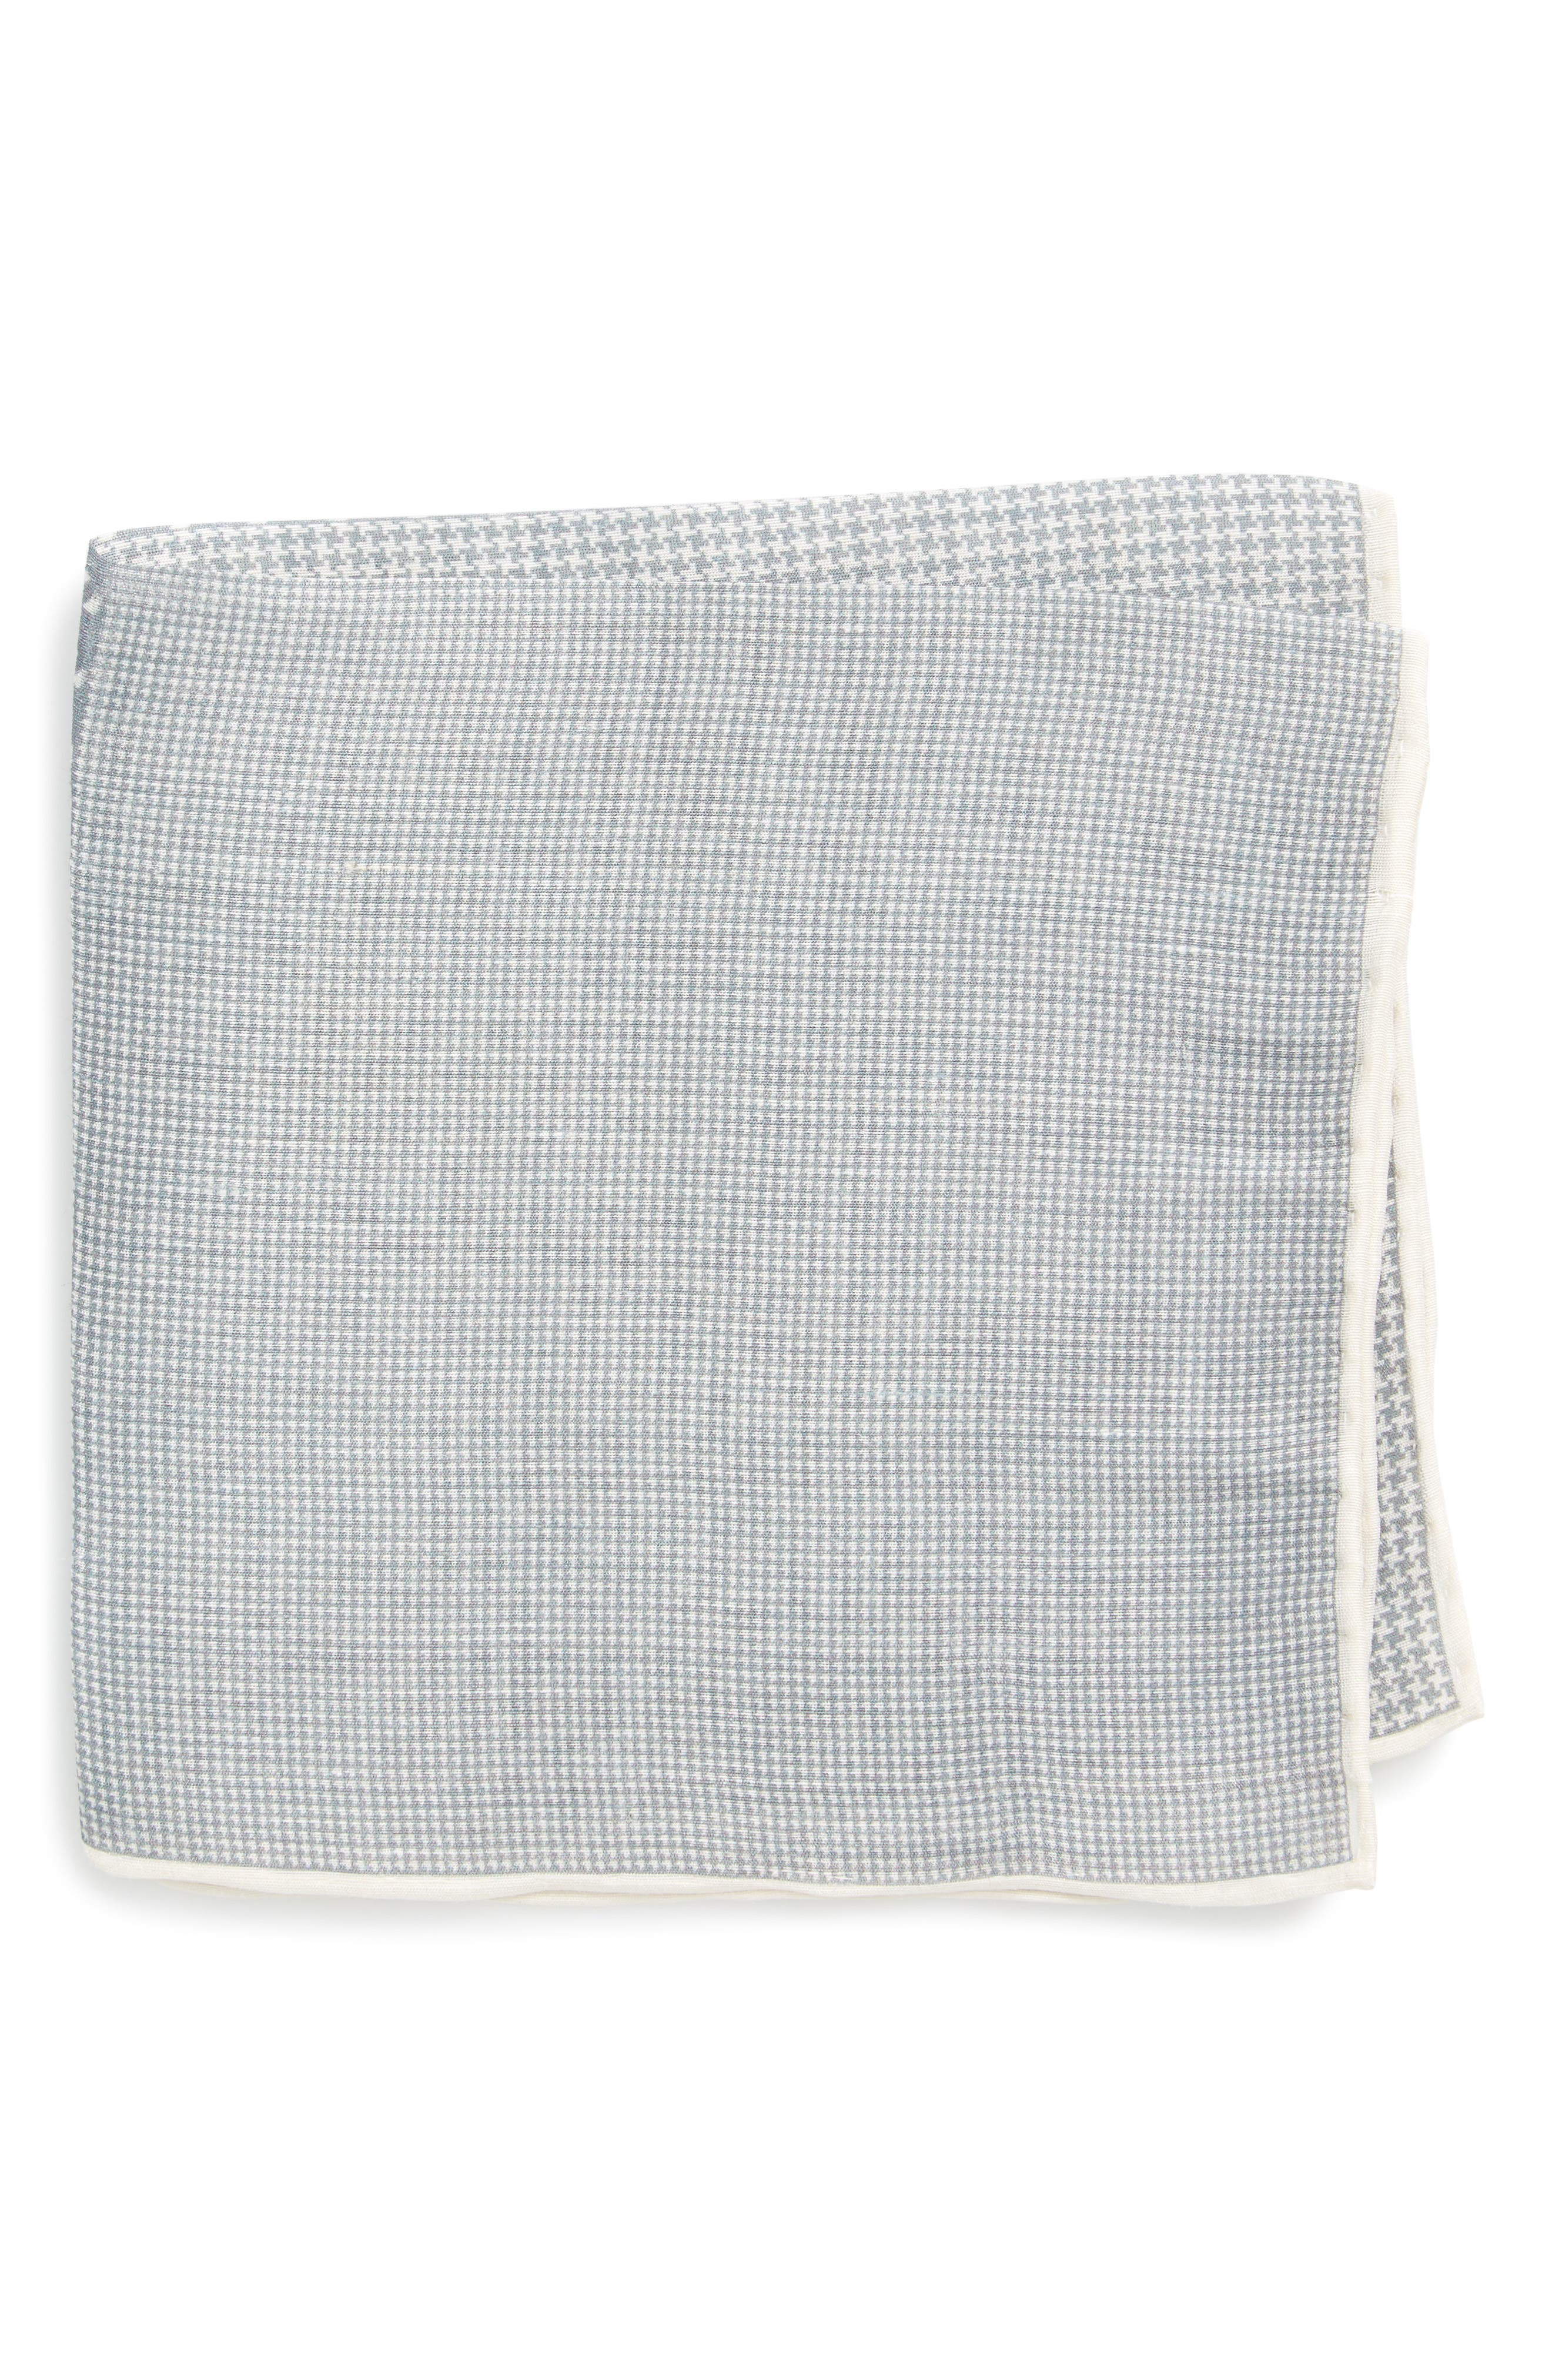 Houndstooth Pocket Square,                             Main thumbnail 1, color,                             039